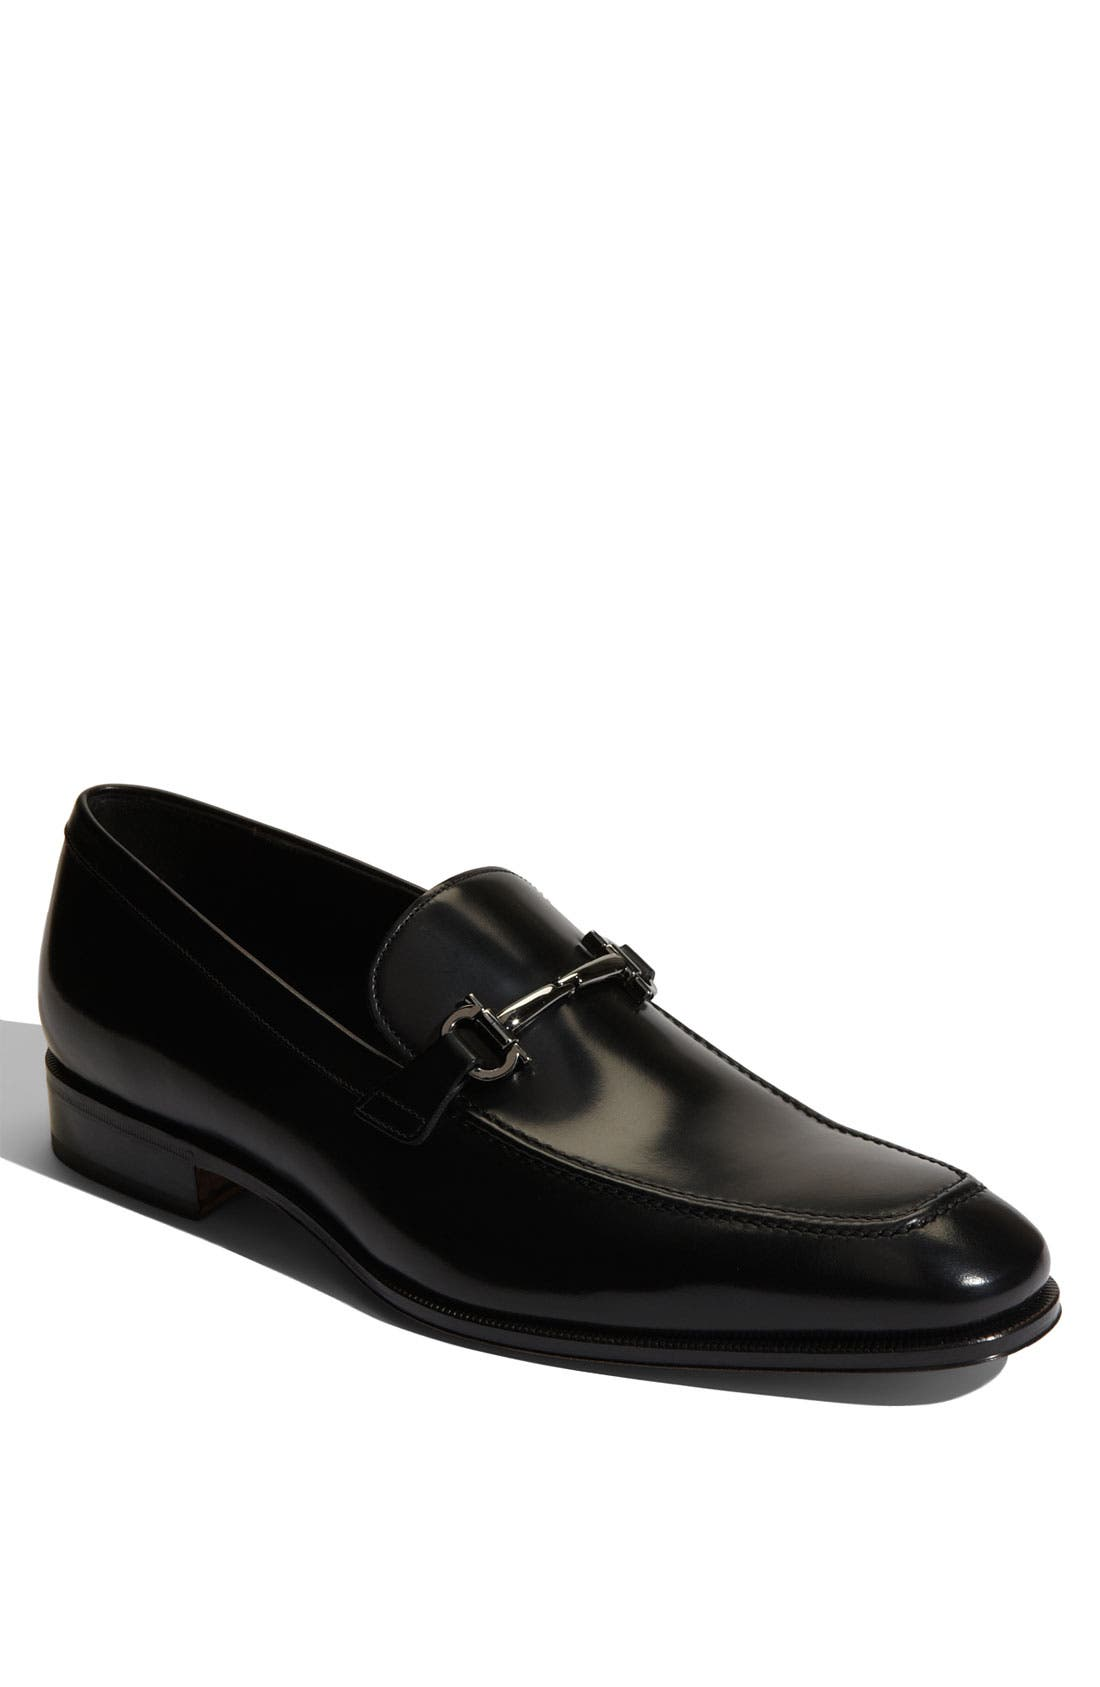 Alternate Image 1 Selected - Salvatore Ferragamo 'Fenice' Loafer